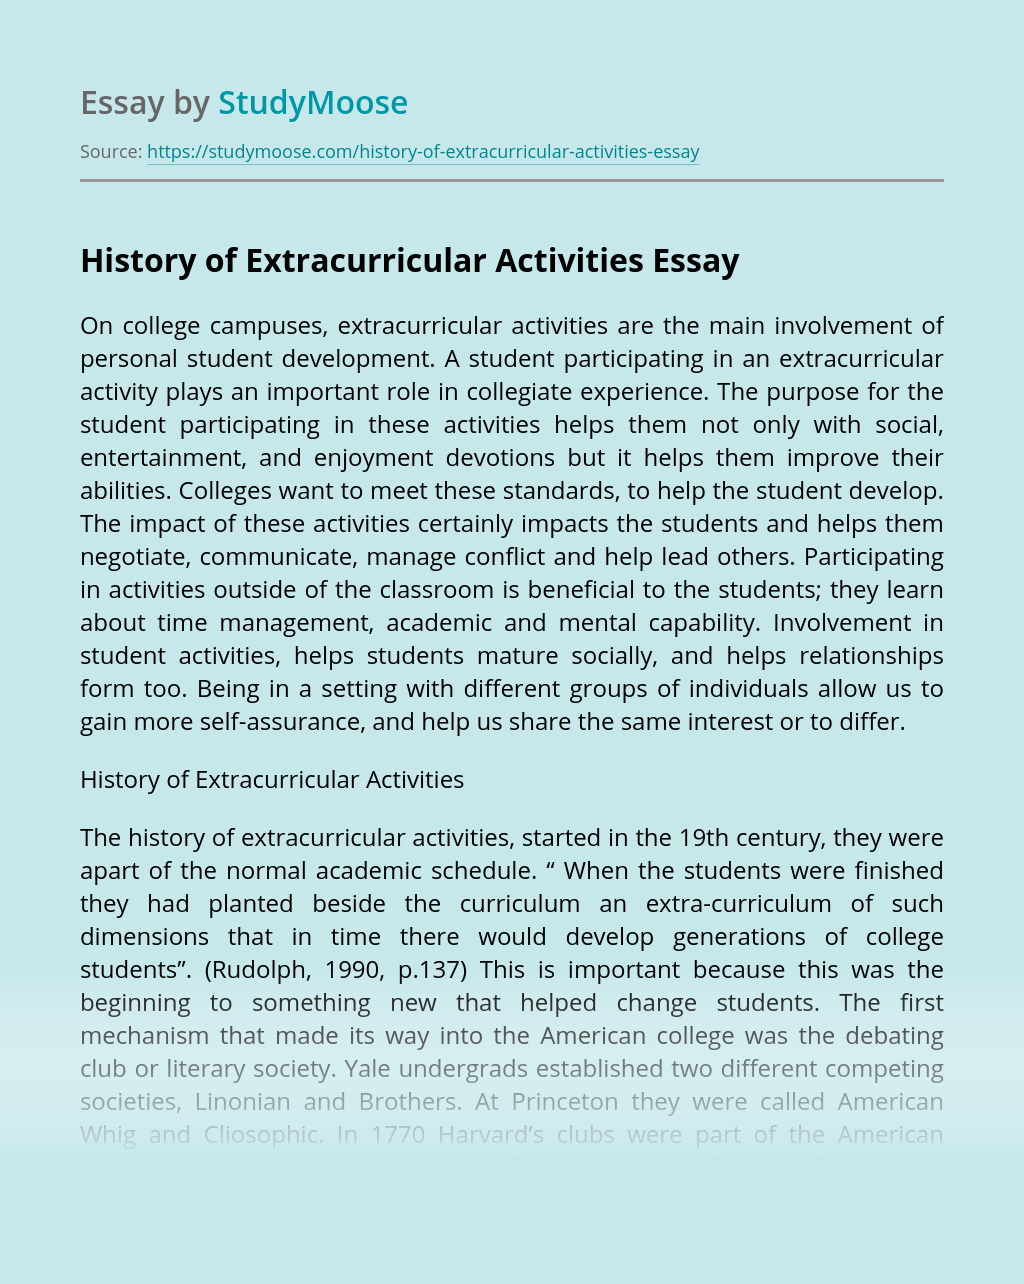 History of Extracurricular Activities